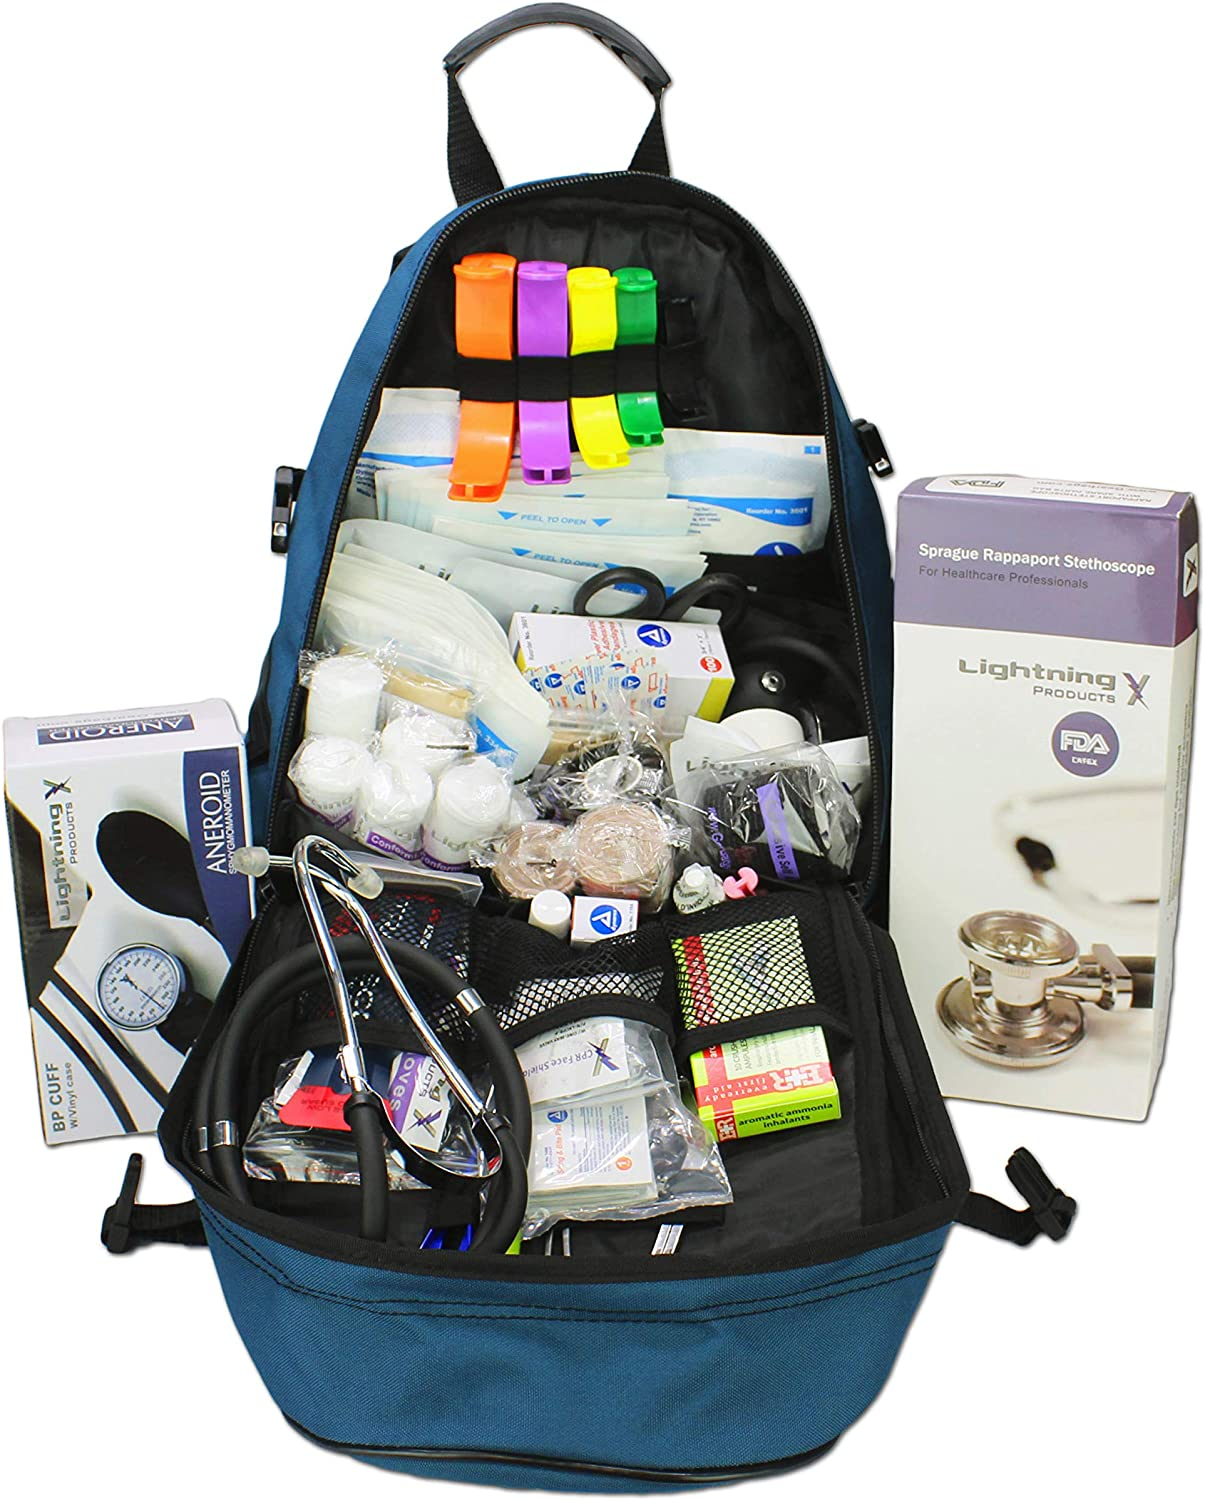 Lightning X First Responder EMT/EMS Backpack Stocked First Aid Supplies Kit B (Navy Blue): Health & Personal Care